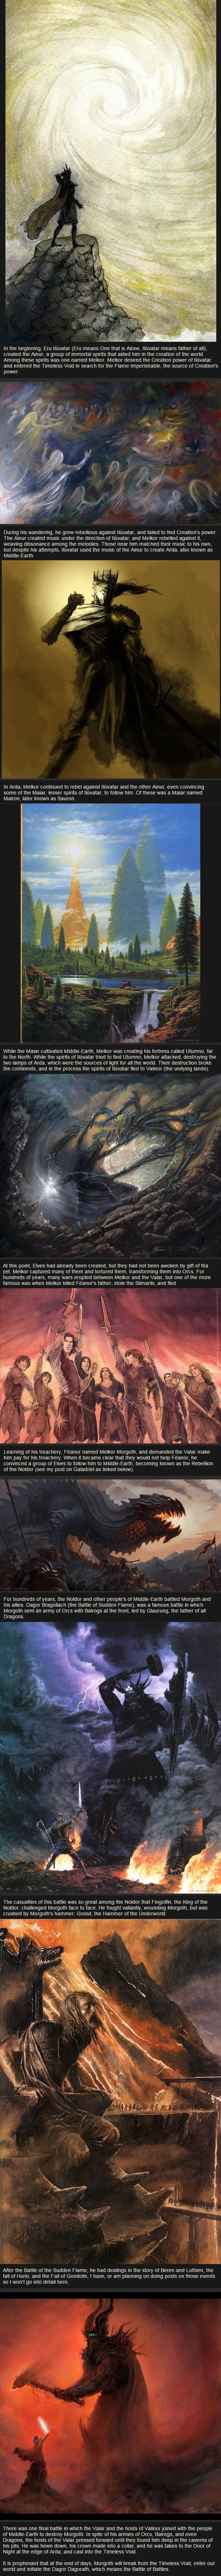 Relatively Unknown Lord of the Rings Facts